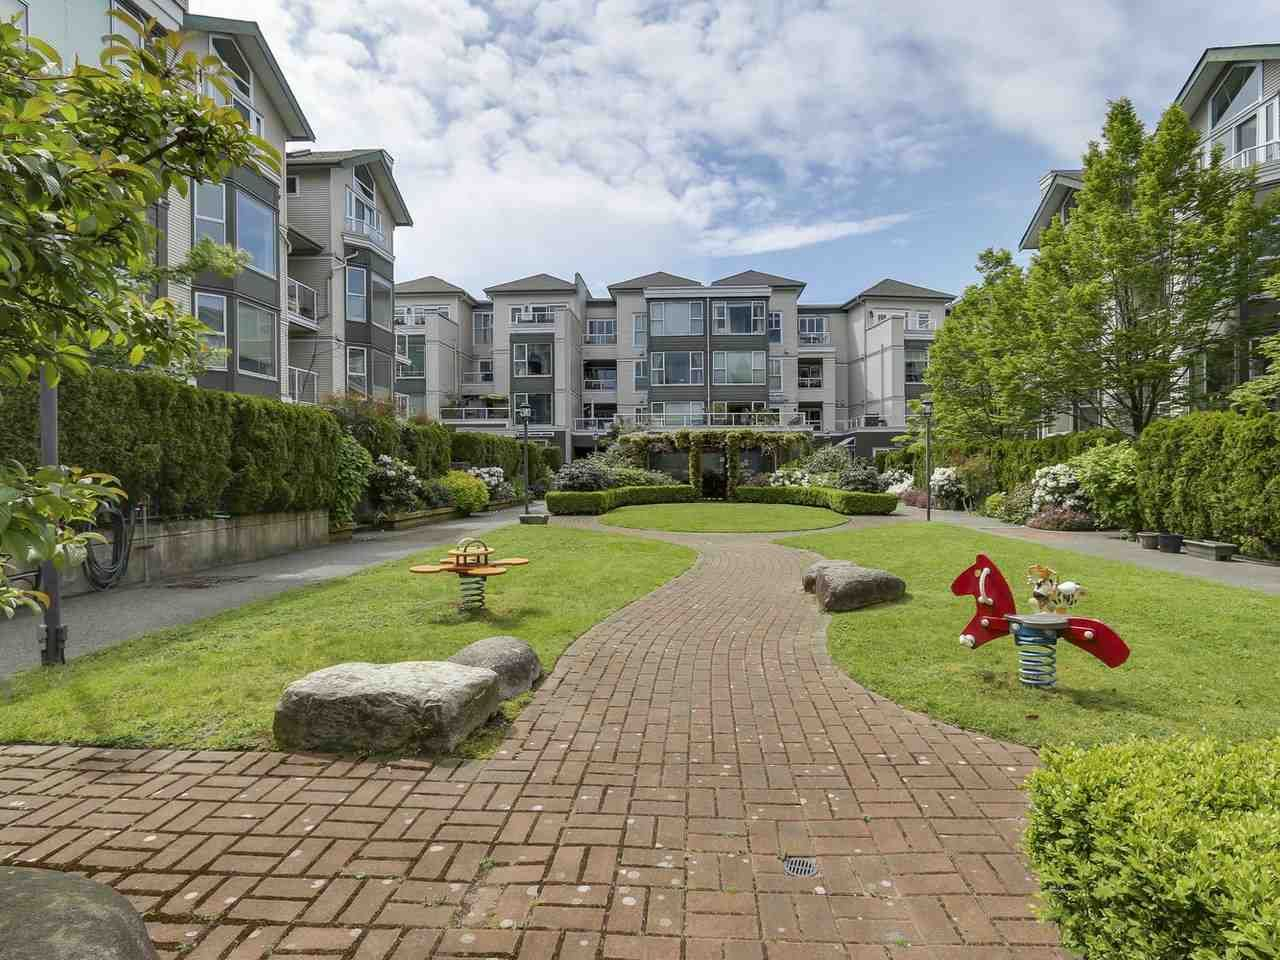 Photo 14: Photos: 305 225 E 19TH AVENUE in Vancouver: Main Condo for sale (Vancouver East)  : MLS®# R2173702